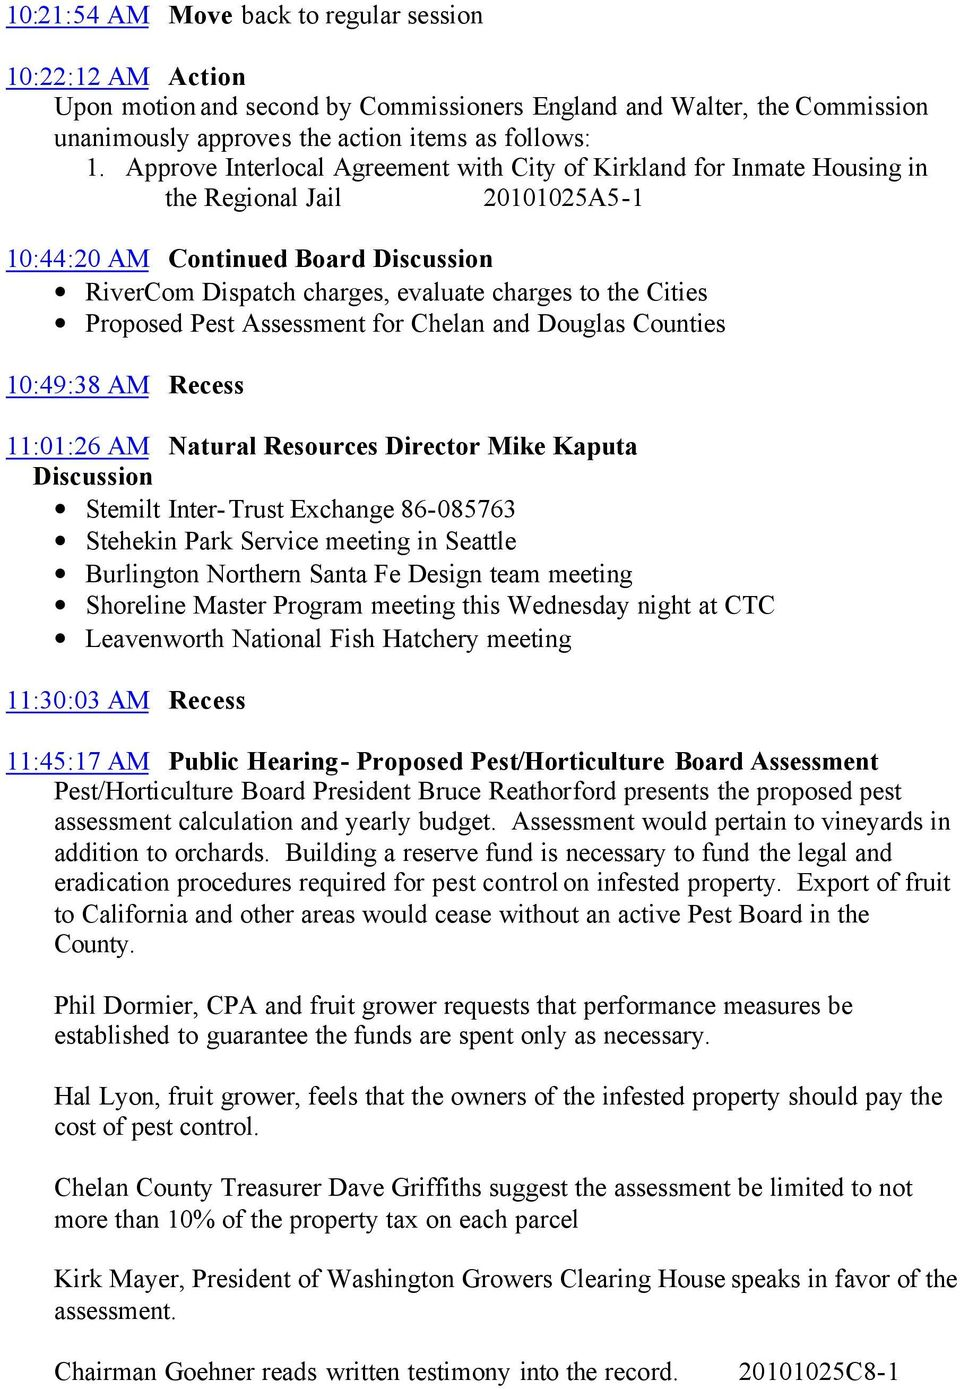 Pest Assessment for Chelan and Douglas Counties 10:49:38 AM Recess 11:01:26 AM Natural Resources Director Mike Kaputa Stemilt Inter-Trust Exchange 86-085763 Stehekin Park Service meeting in Seattle